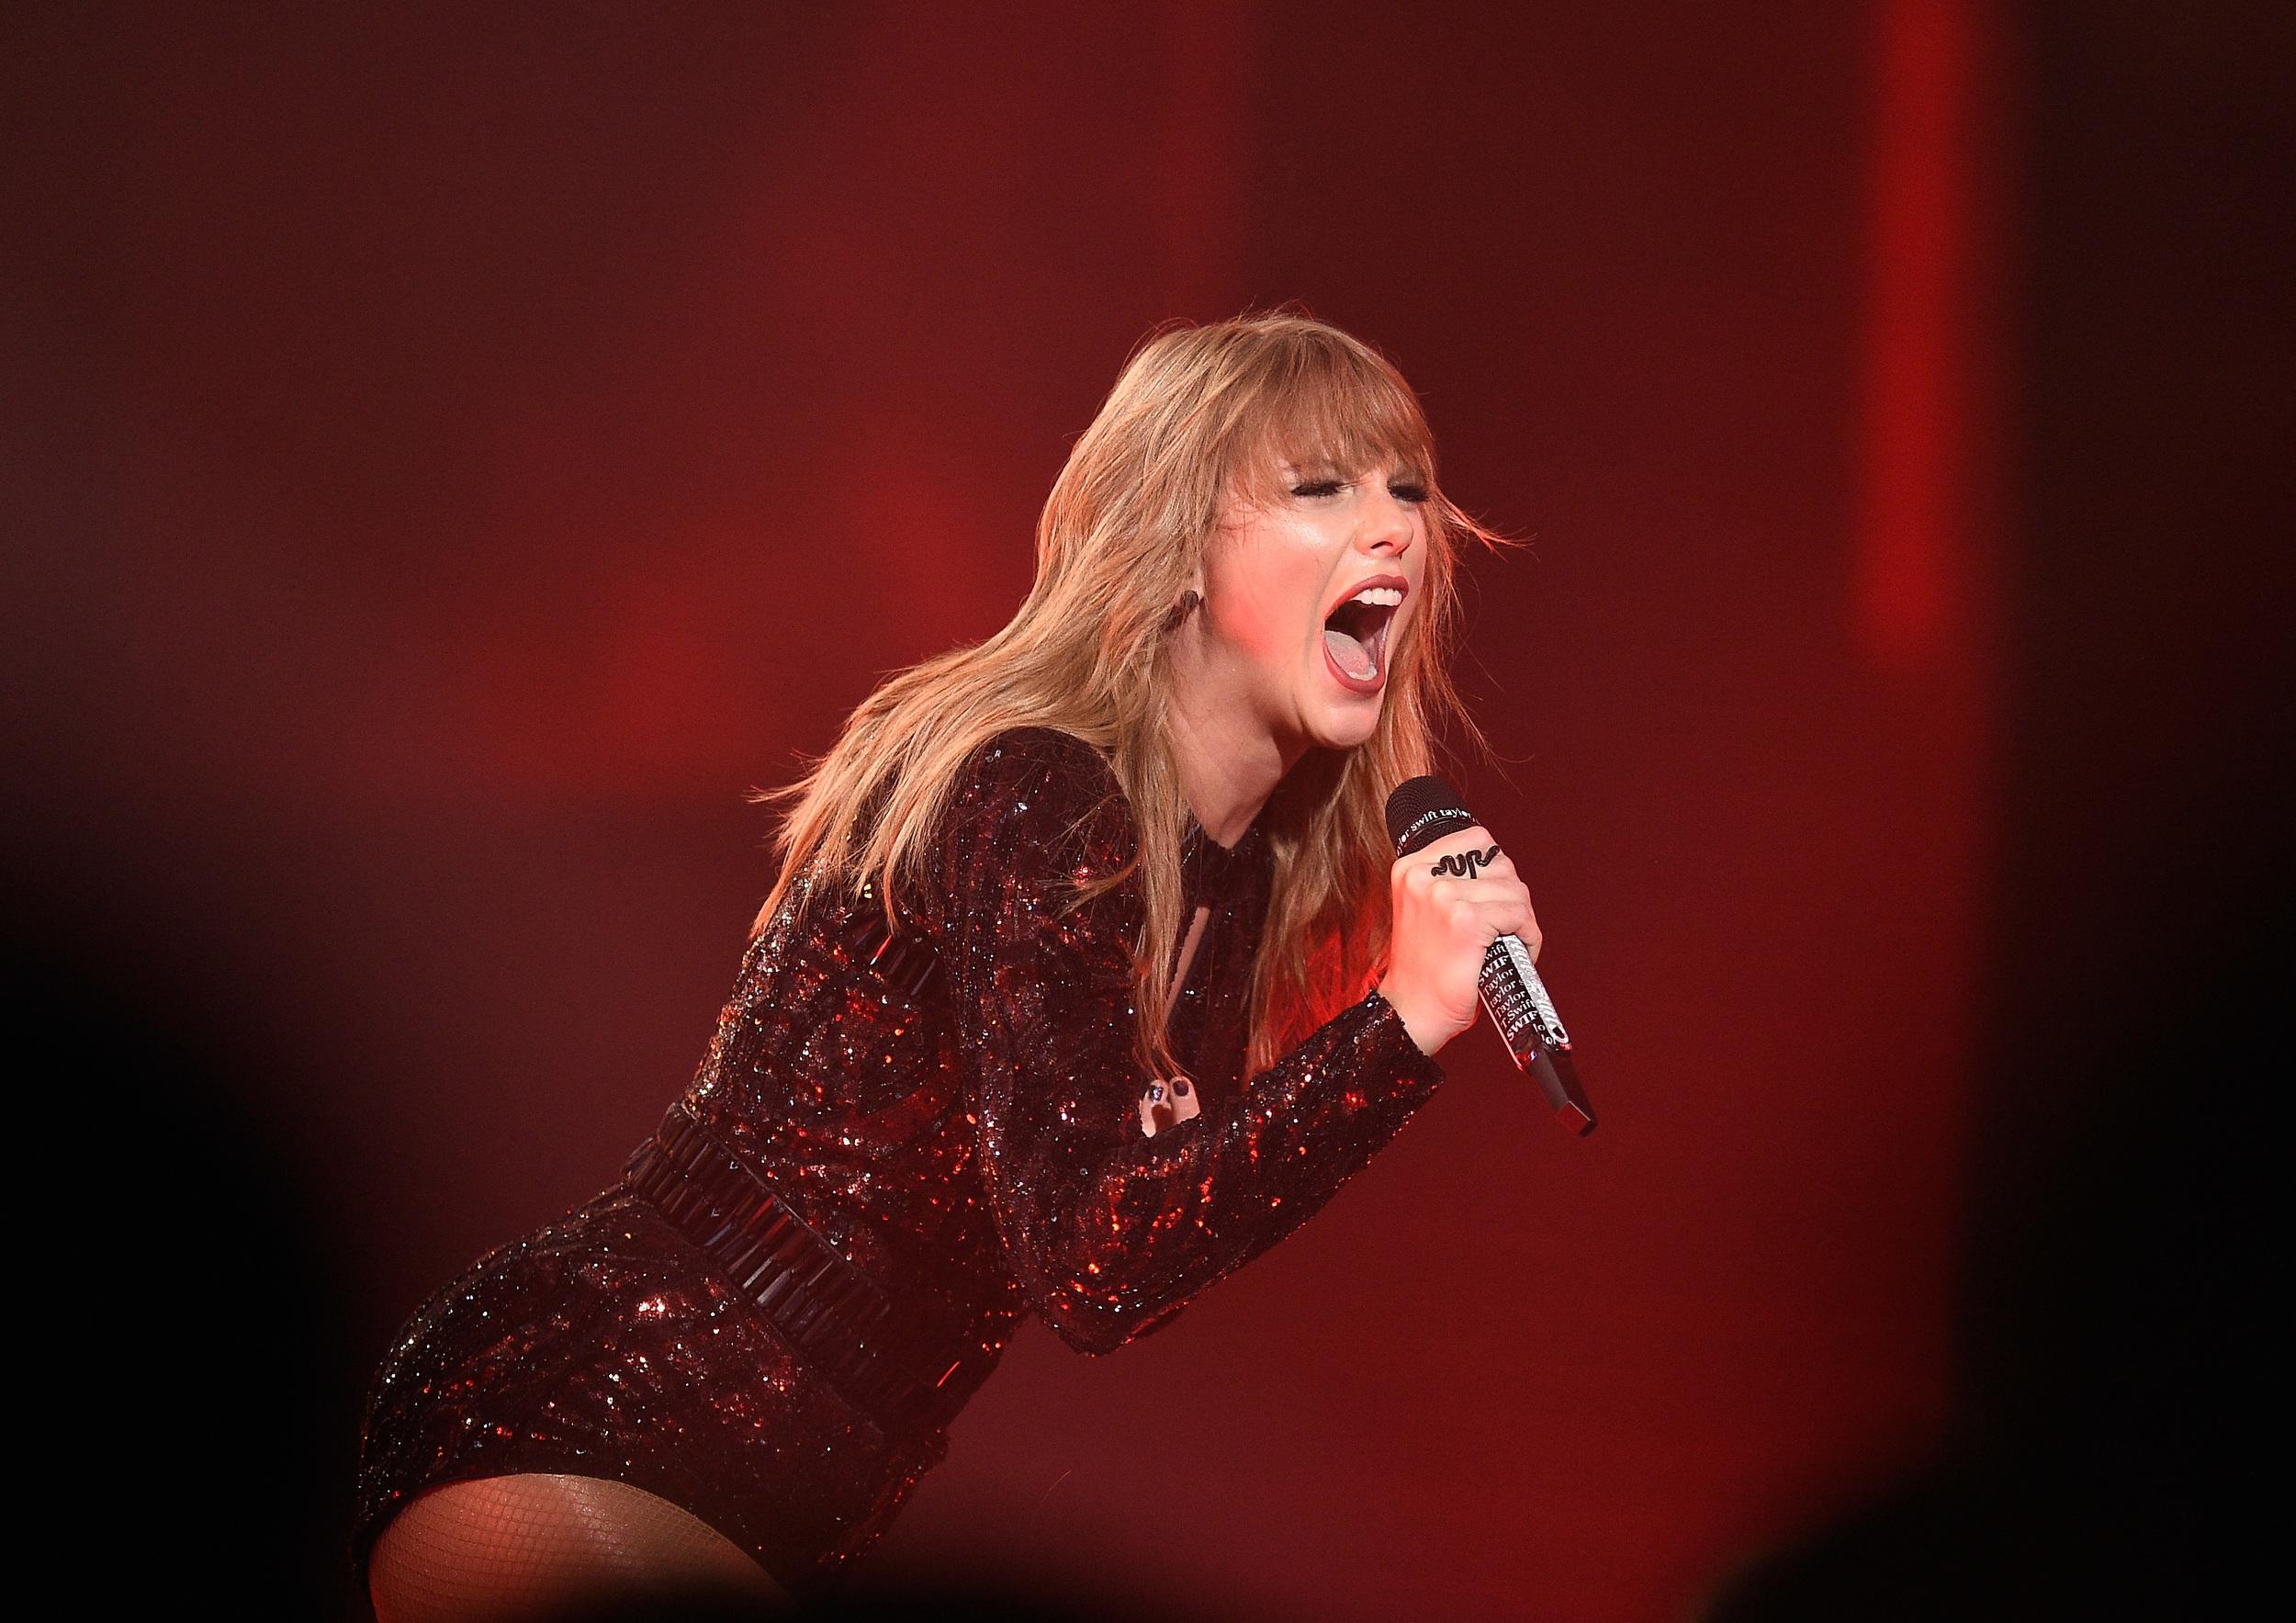 LOS ANGELES, CA - OCTOBER 09:  Taylor Swift performs on stage at the 2018 American Music Awards at Microsoft Theater on October 9, 2018 in Los Angeles, California.  (Photo by Kevork Djansezian/AMA2018/Getty Images For dcp )